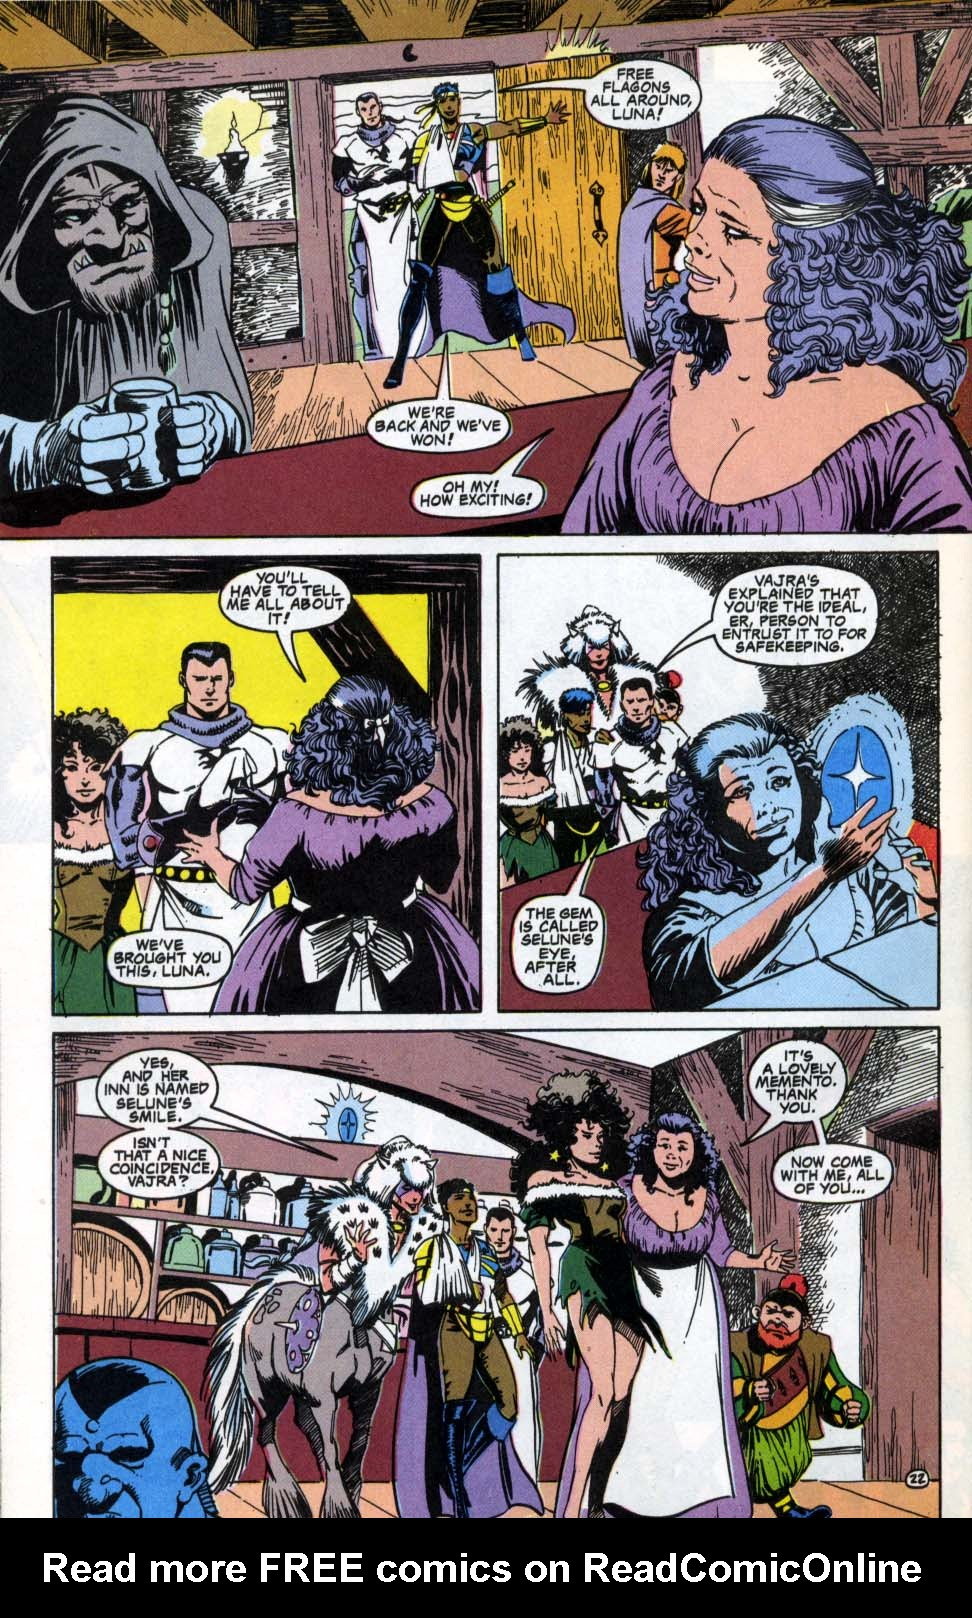 Read online Advanced Dungeons & Dragons comic -  Issue #4 - 22